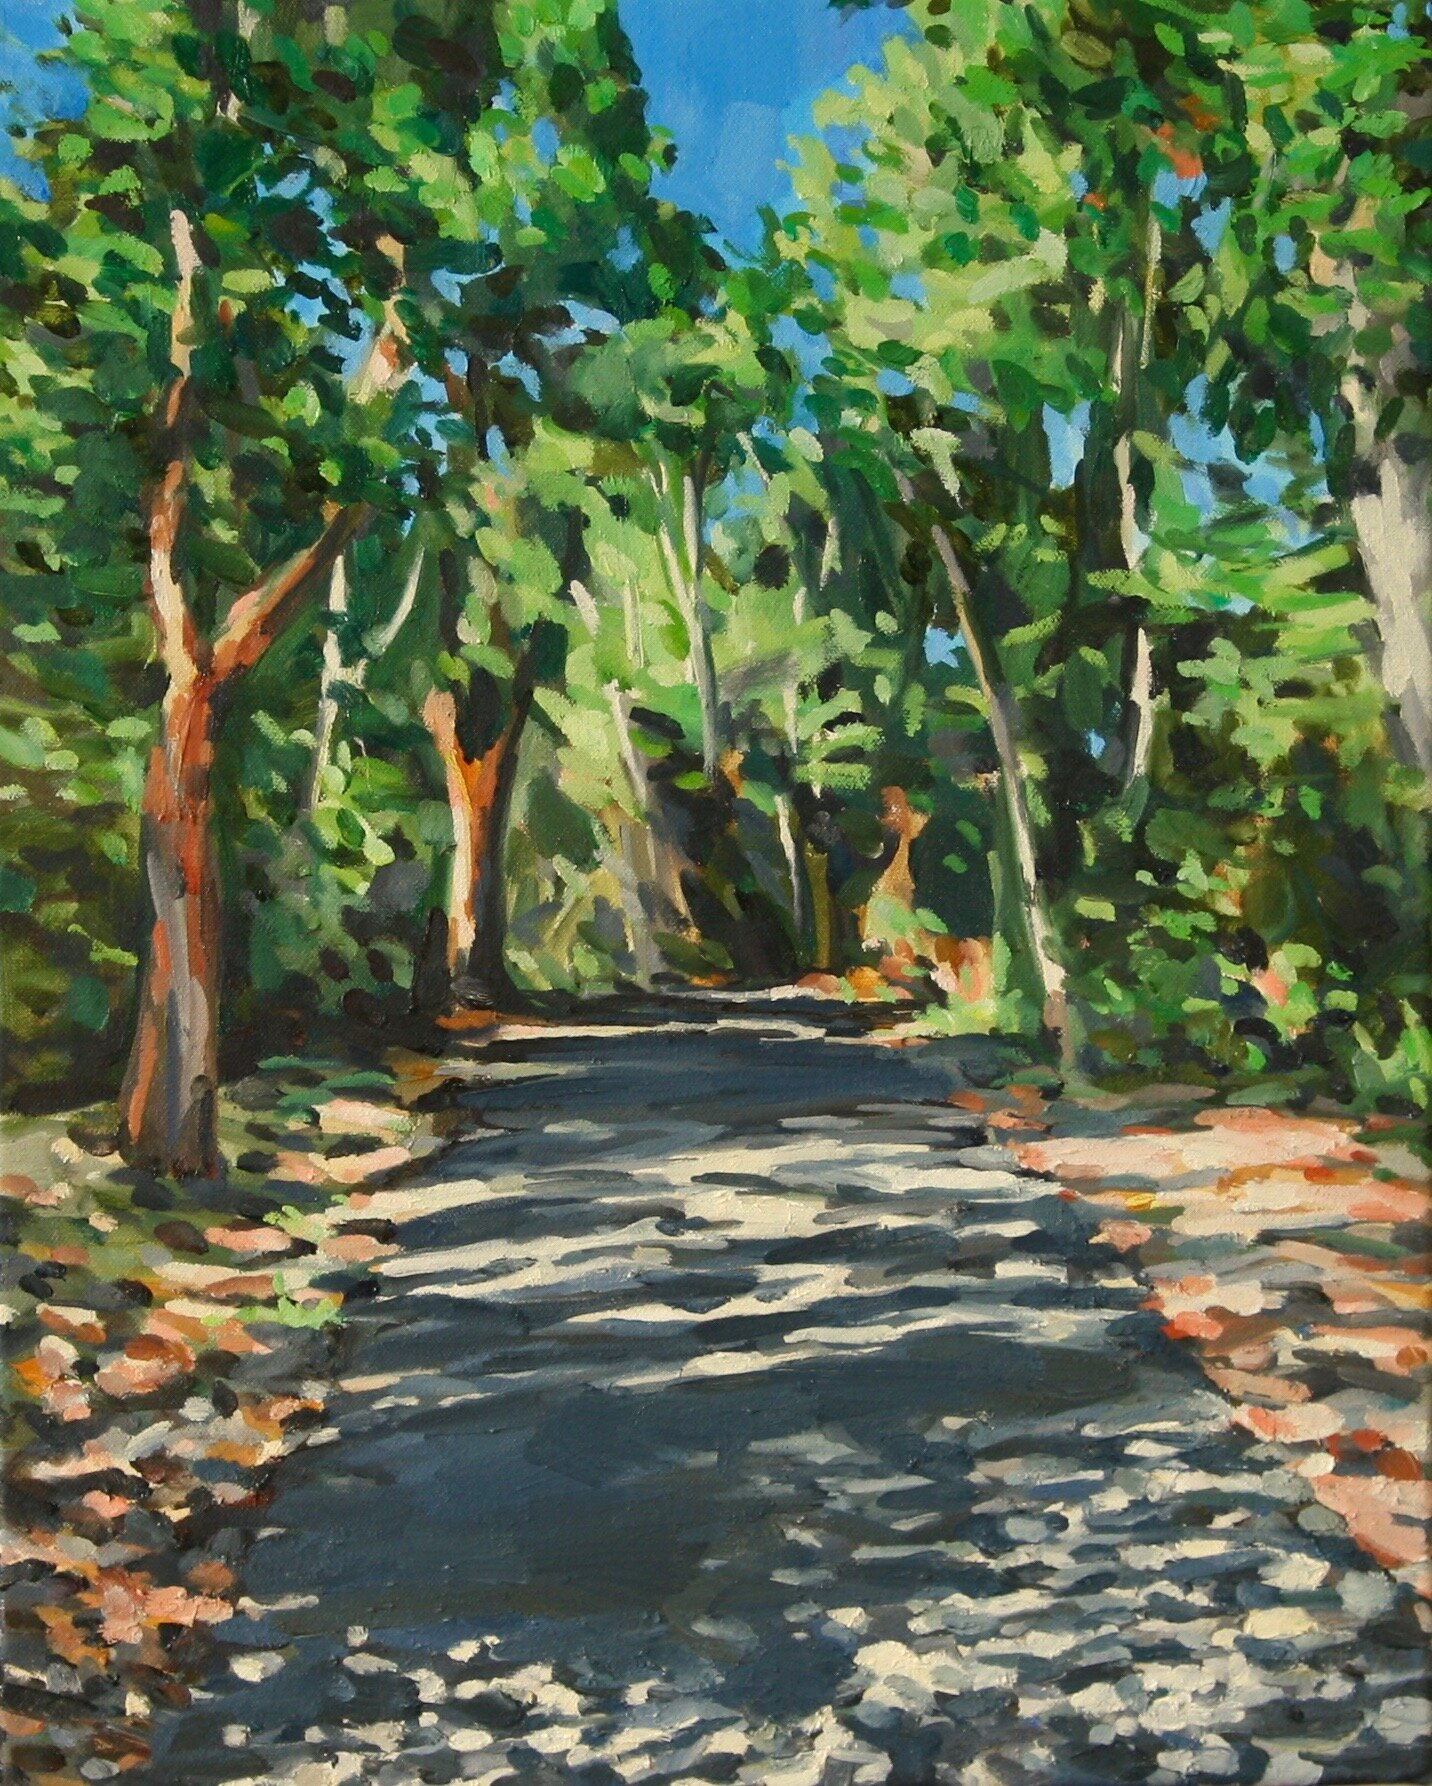 """'Back Road'  2019  16"""" x 20""""  water soluble oil on canvas  available"""